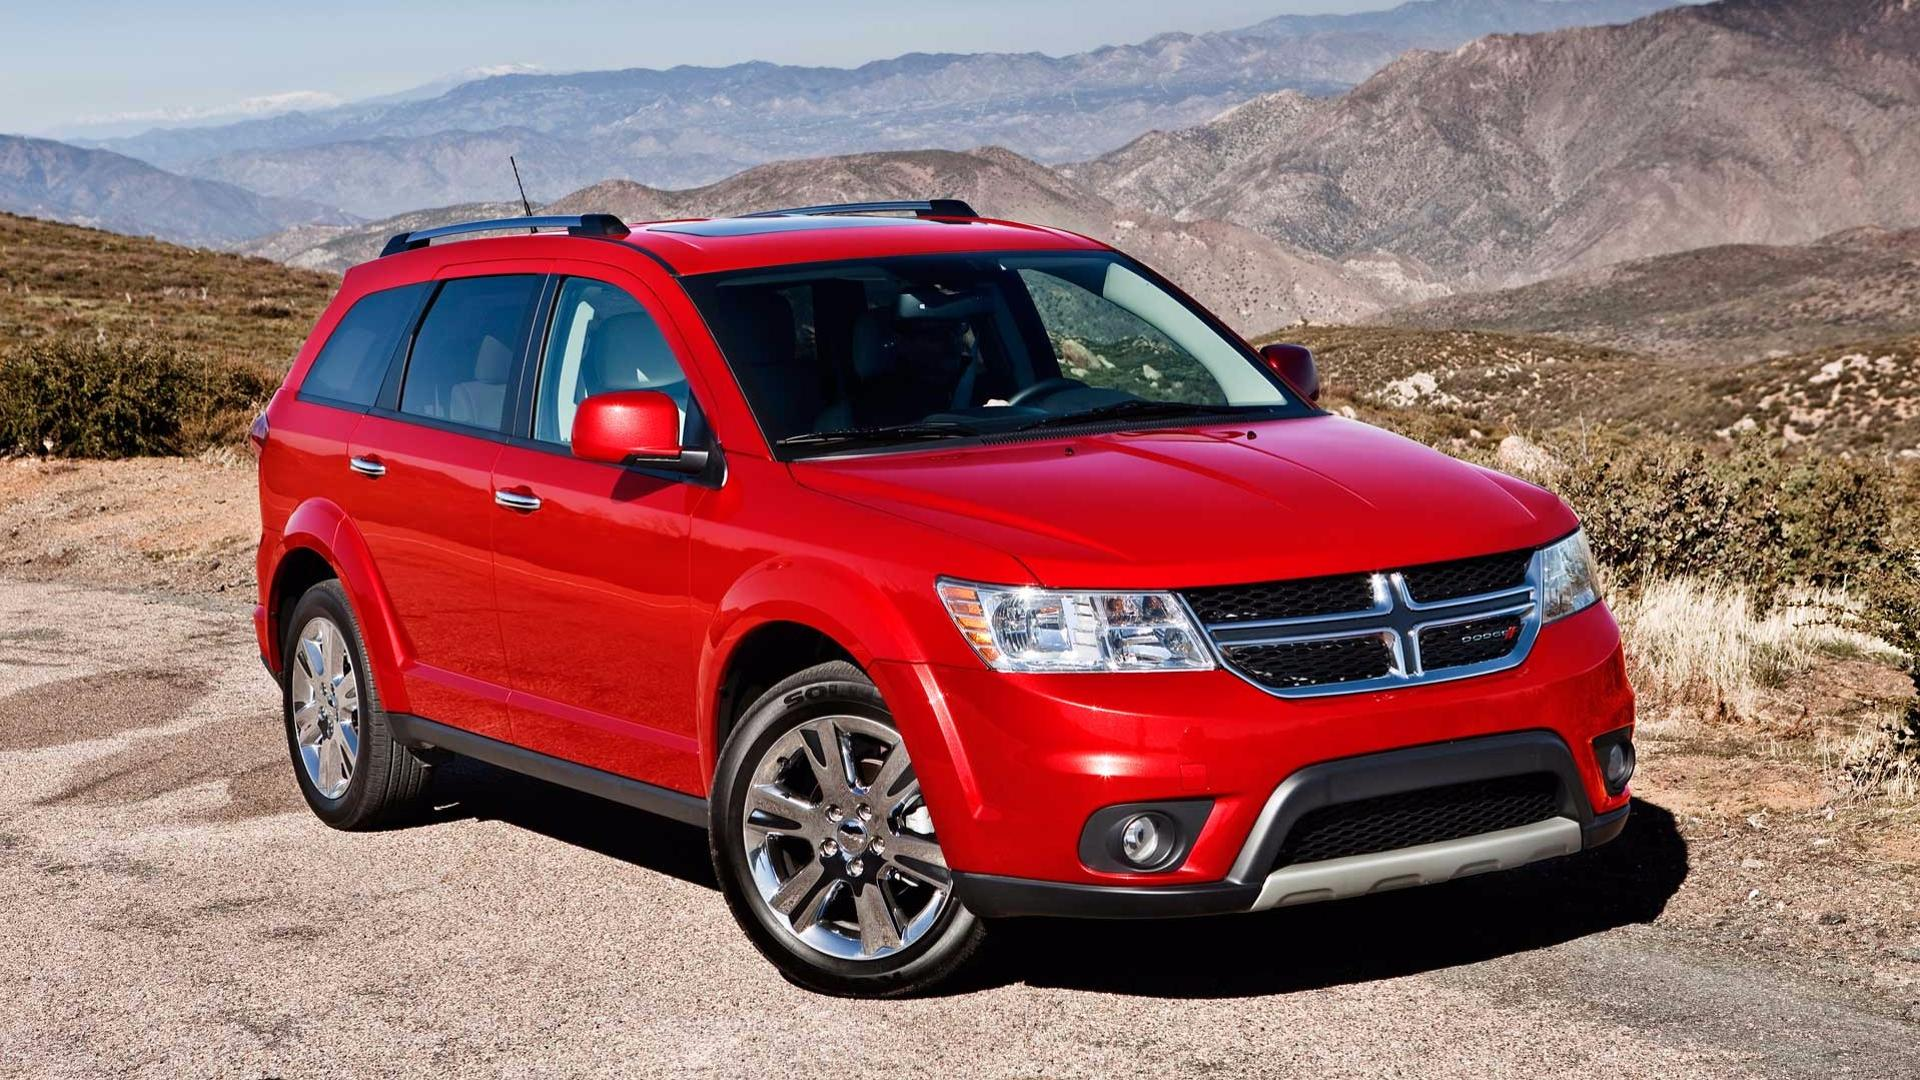 hight resolution of fca recalls 363k dodge journey crossovers for airbag issues rh motor1 com 2011 dodge journey heater core diagram a c compressor dodge journey